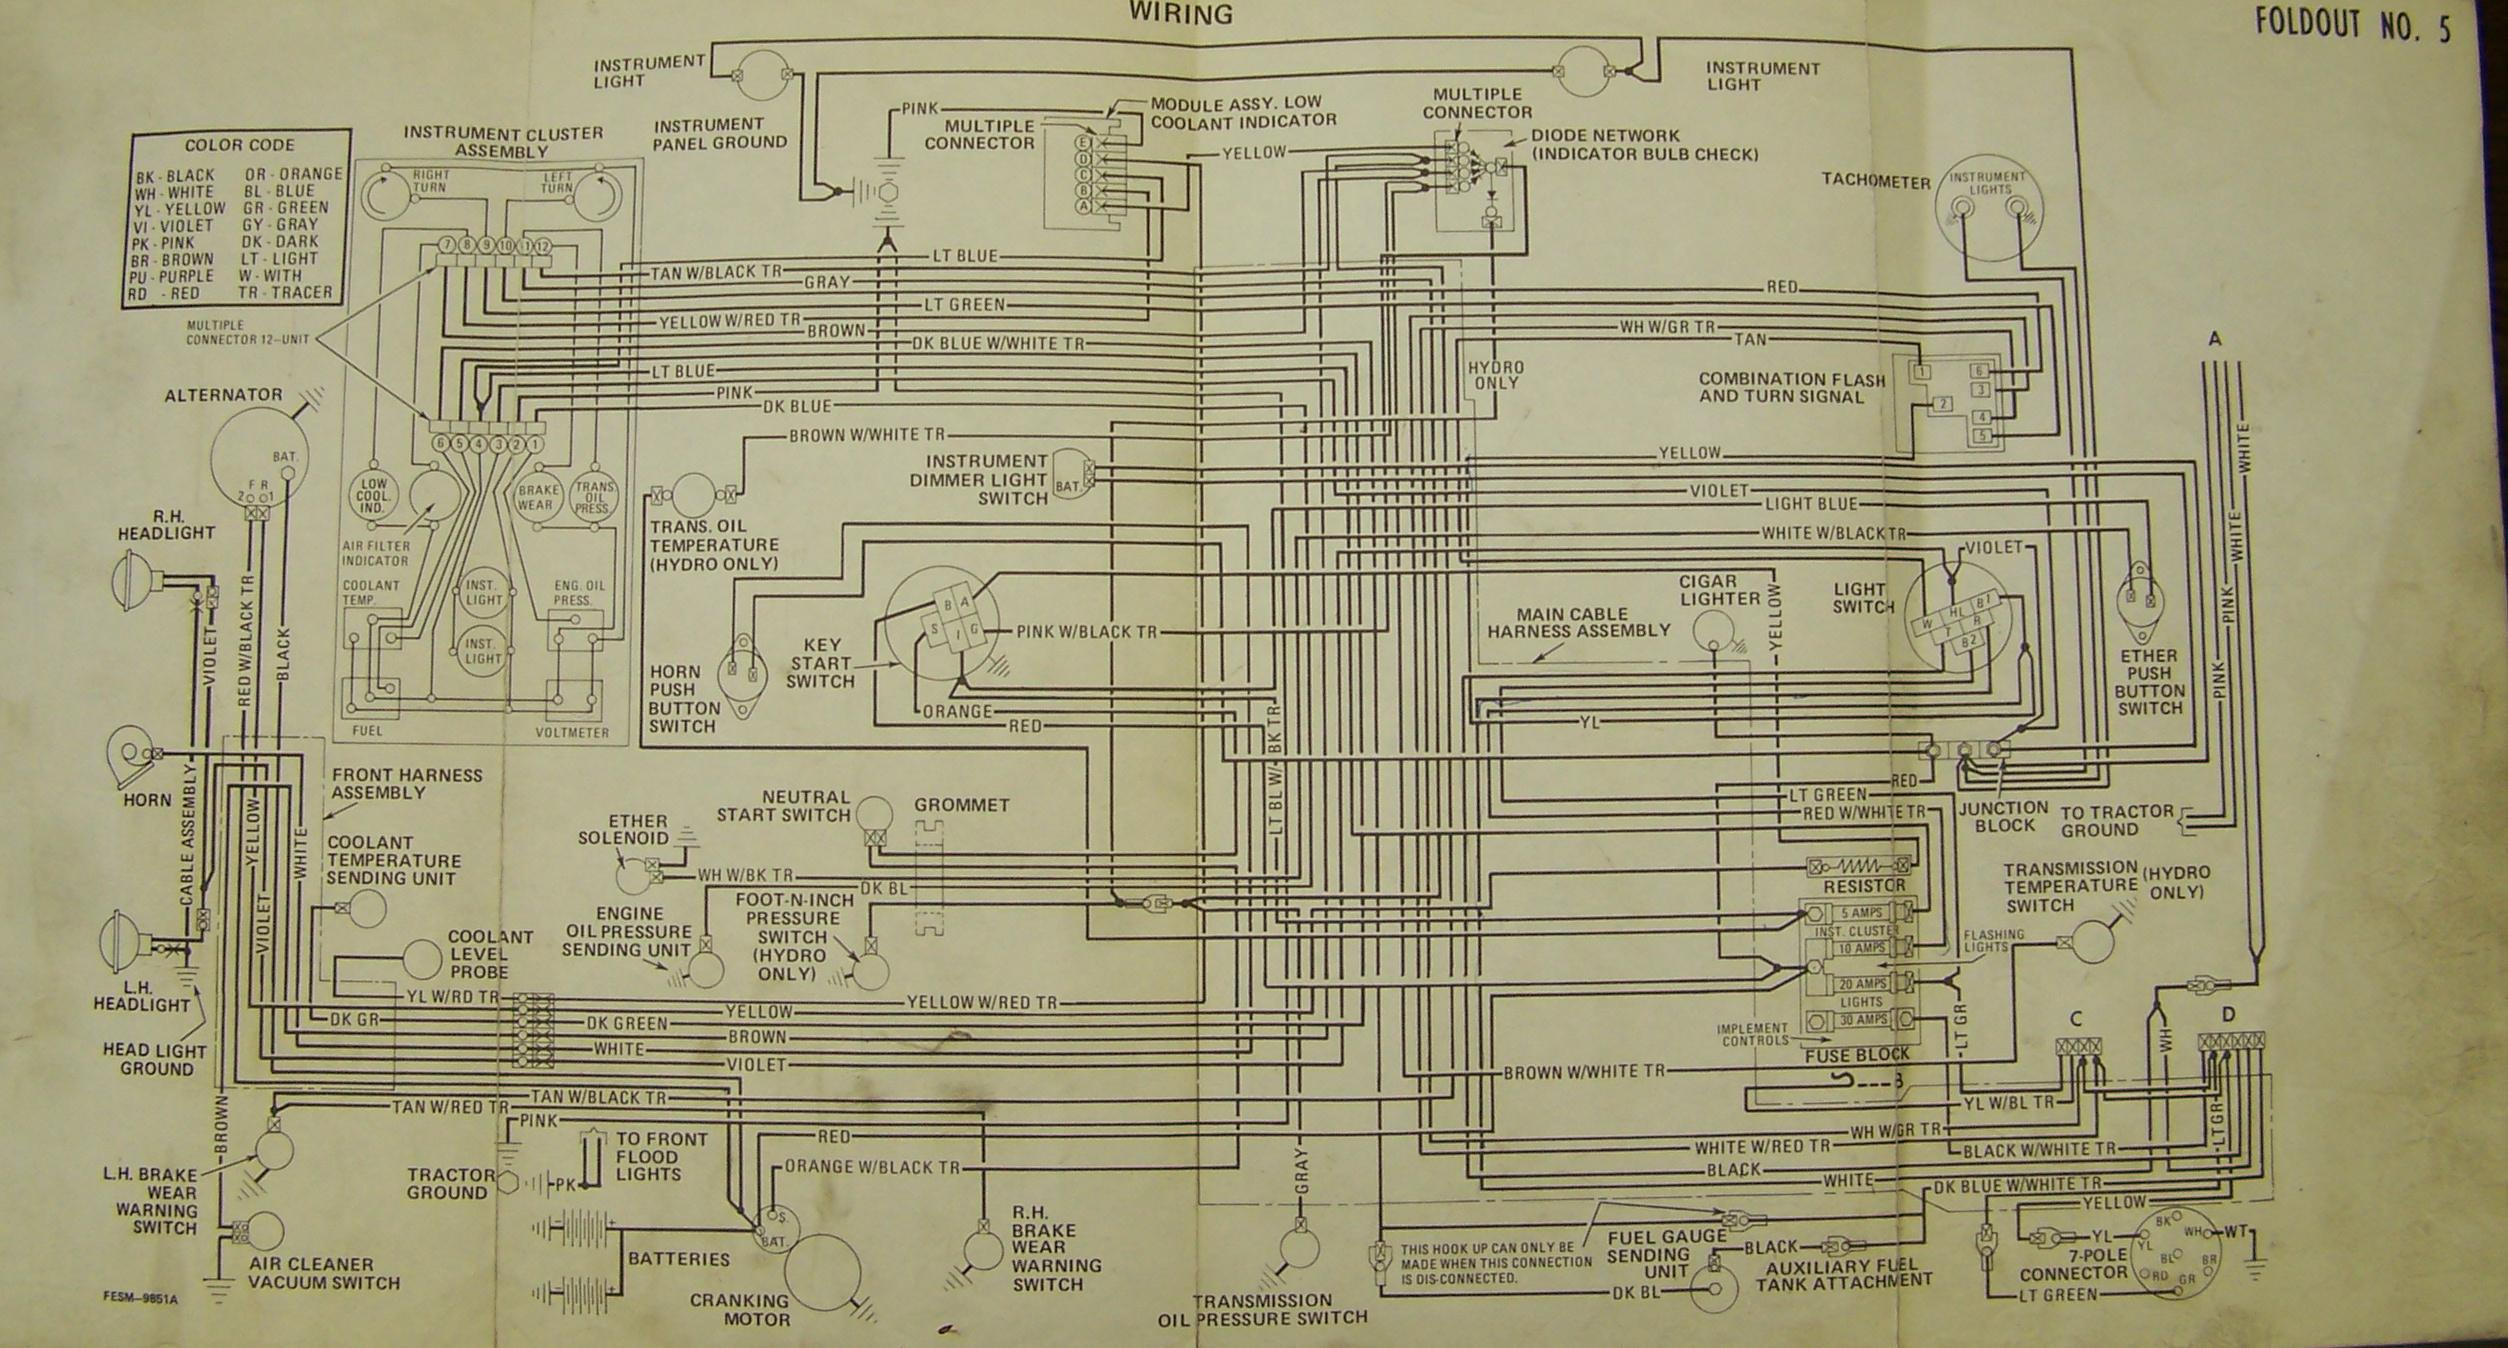 86series5 international motor diagrams ge electric motor wiring diagram 856 international wiring harness at aneh.co